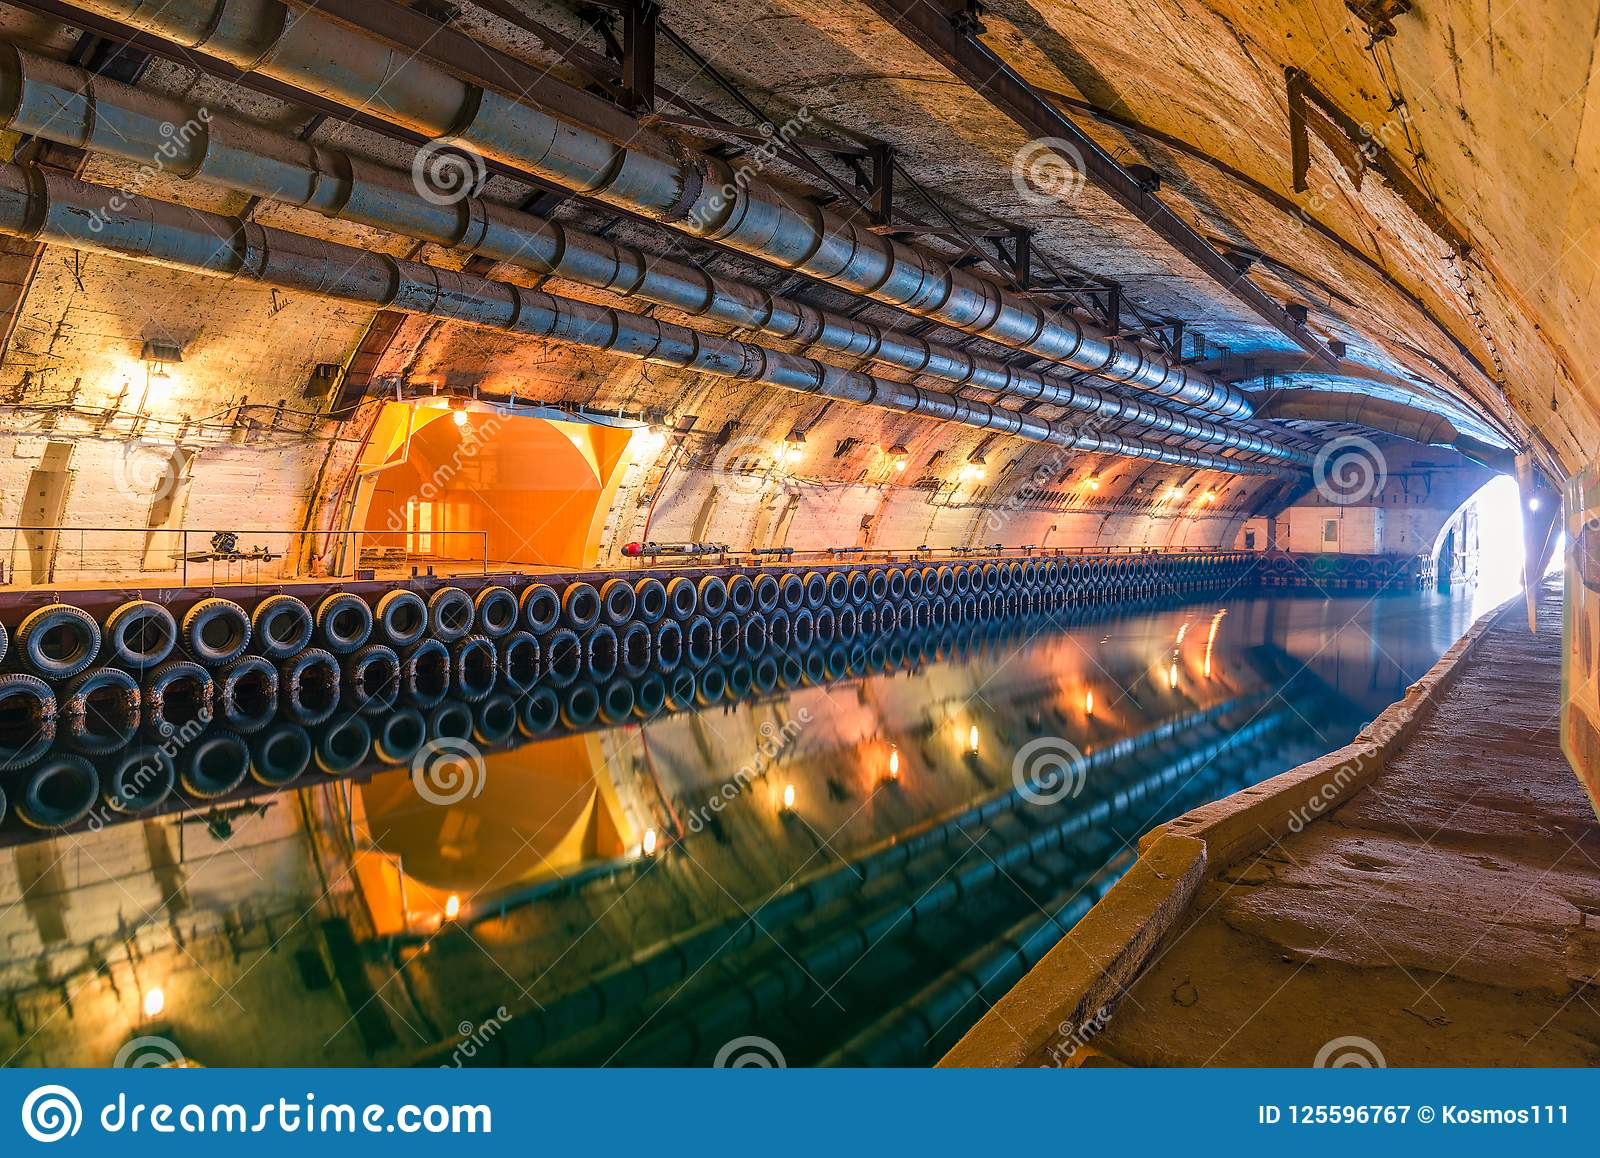 Underground channel for the repair of submarines during the Cold